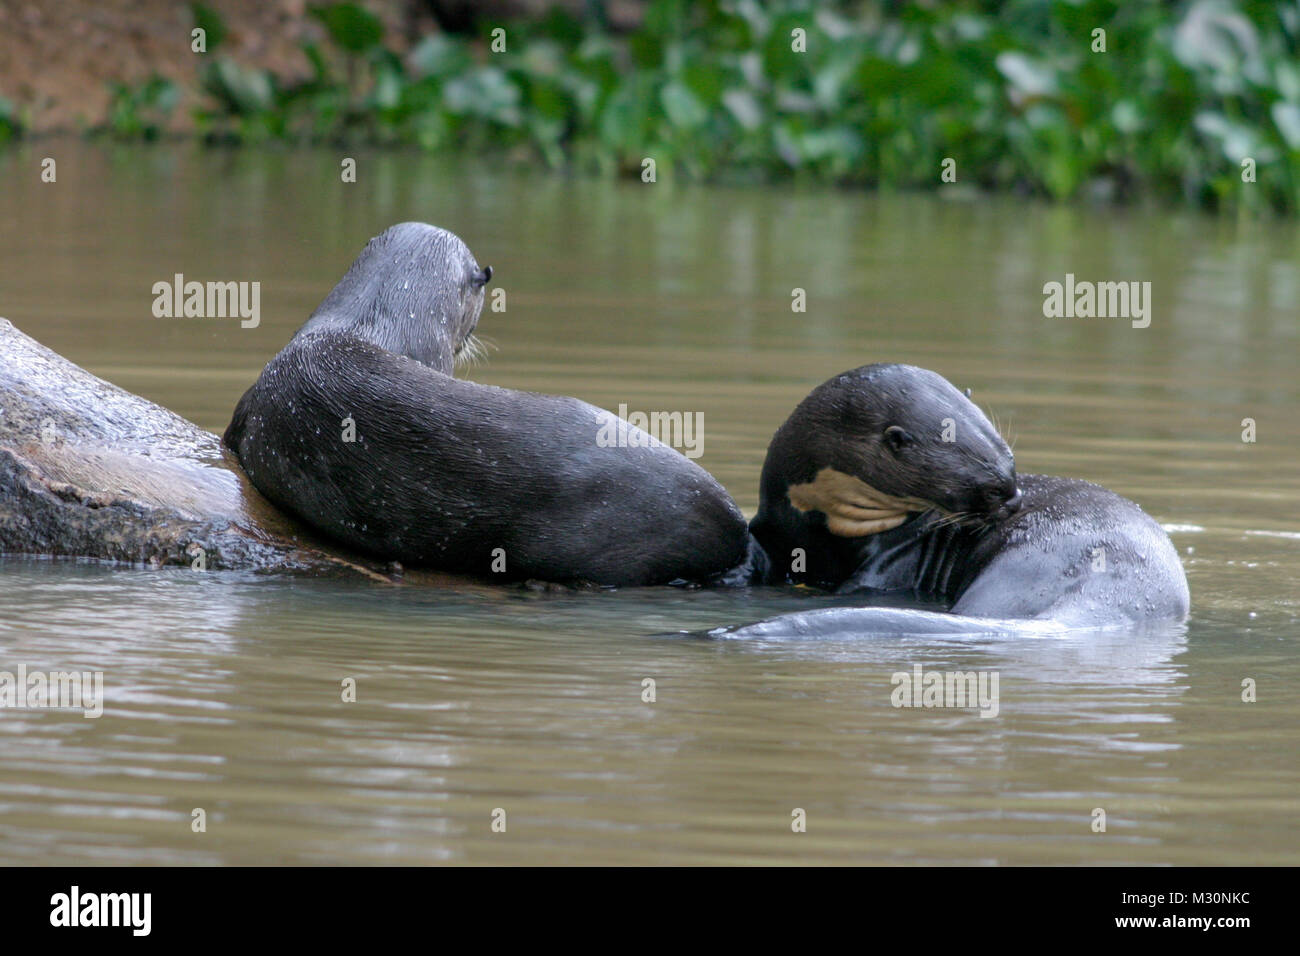 Giant Otters resting in the waters of the Pantanal,  Mato Grosso Do Sul region of Brazil - Stock Image